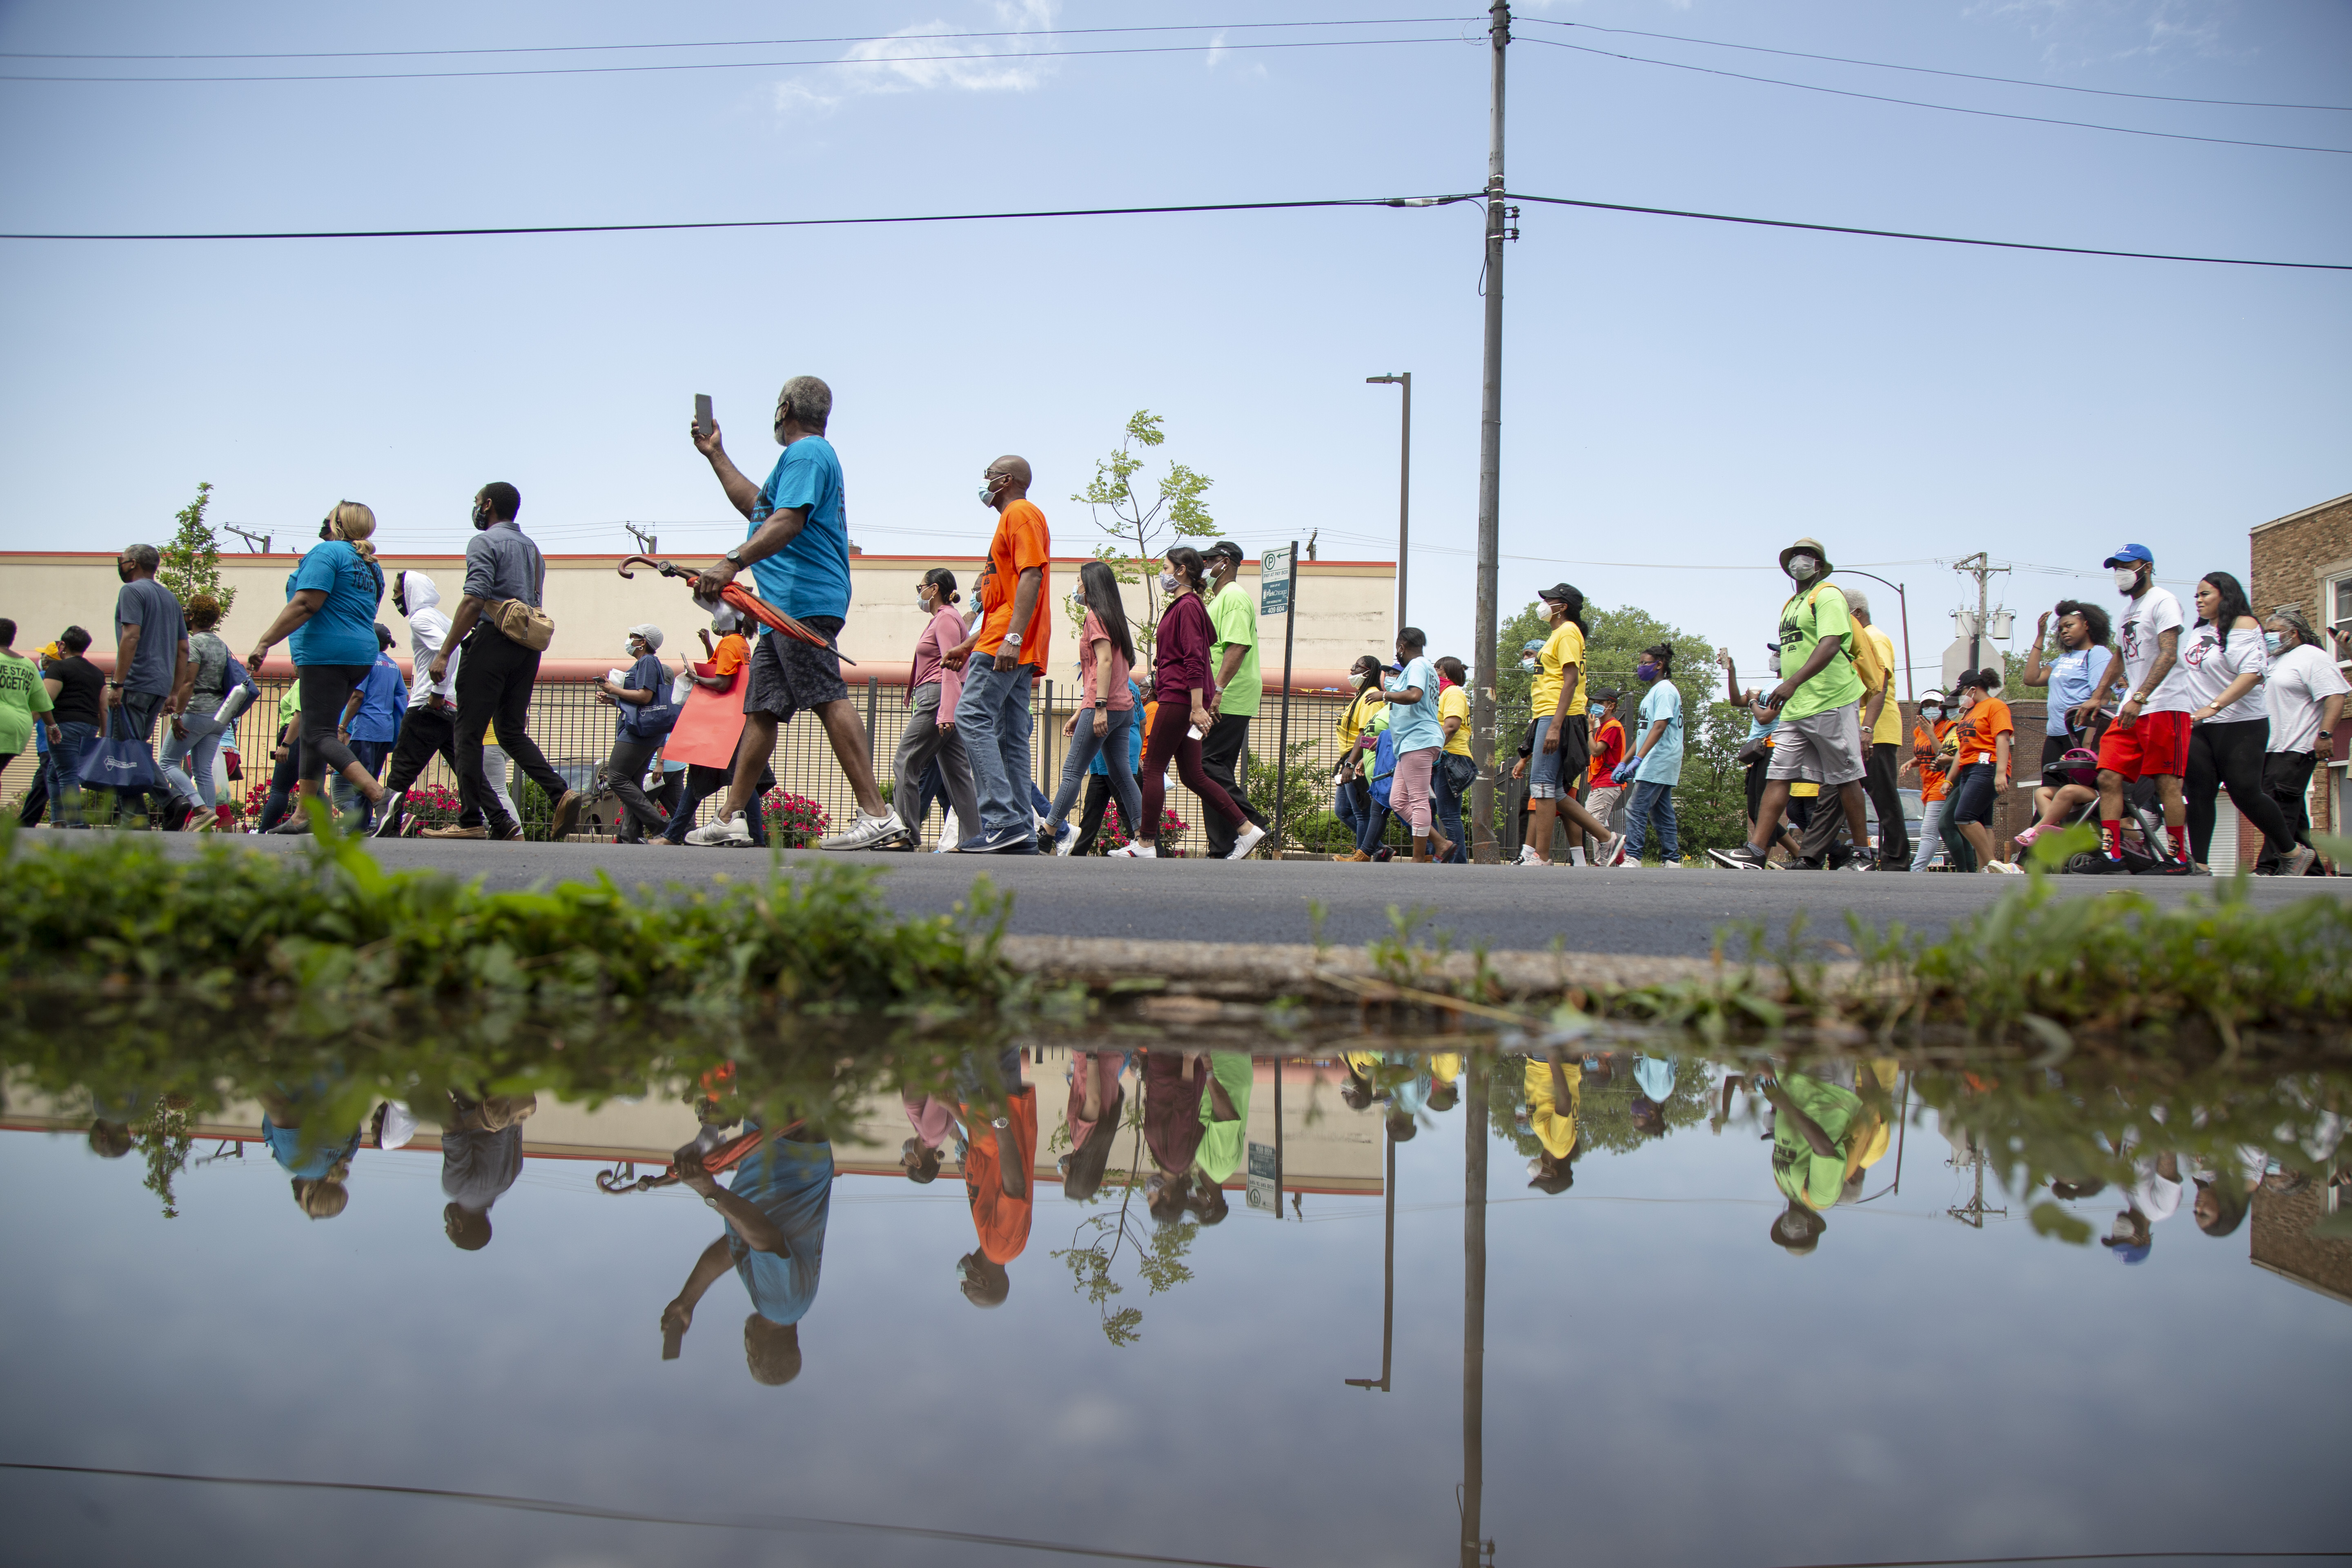 Community members walk down the street during a march in Roseland, Wednesday June 10, 2020. The group marched to unite the community toward progress and sustainability after some businesses along South Michigan Avenue were damaged.